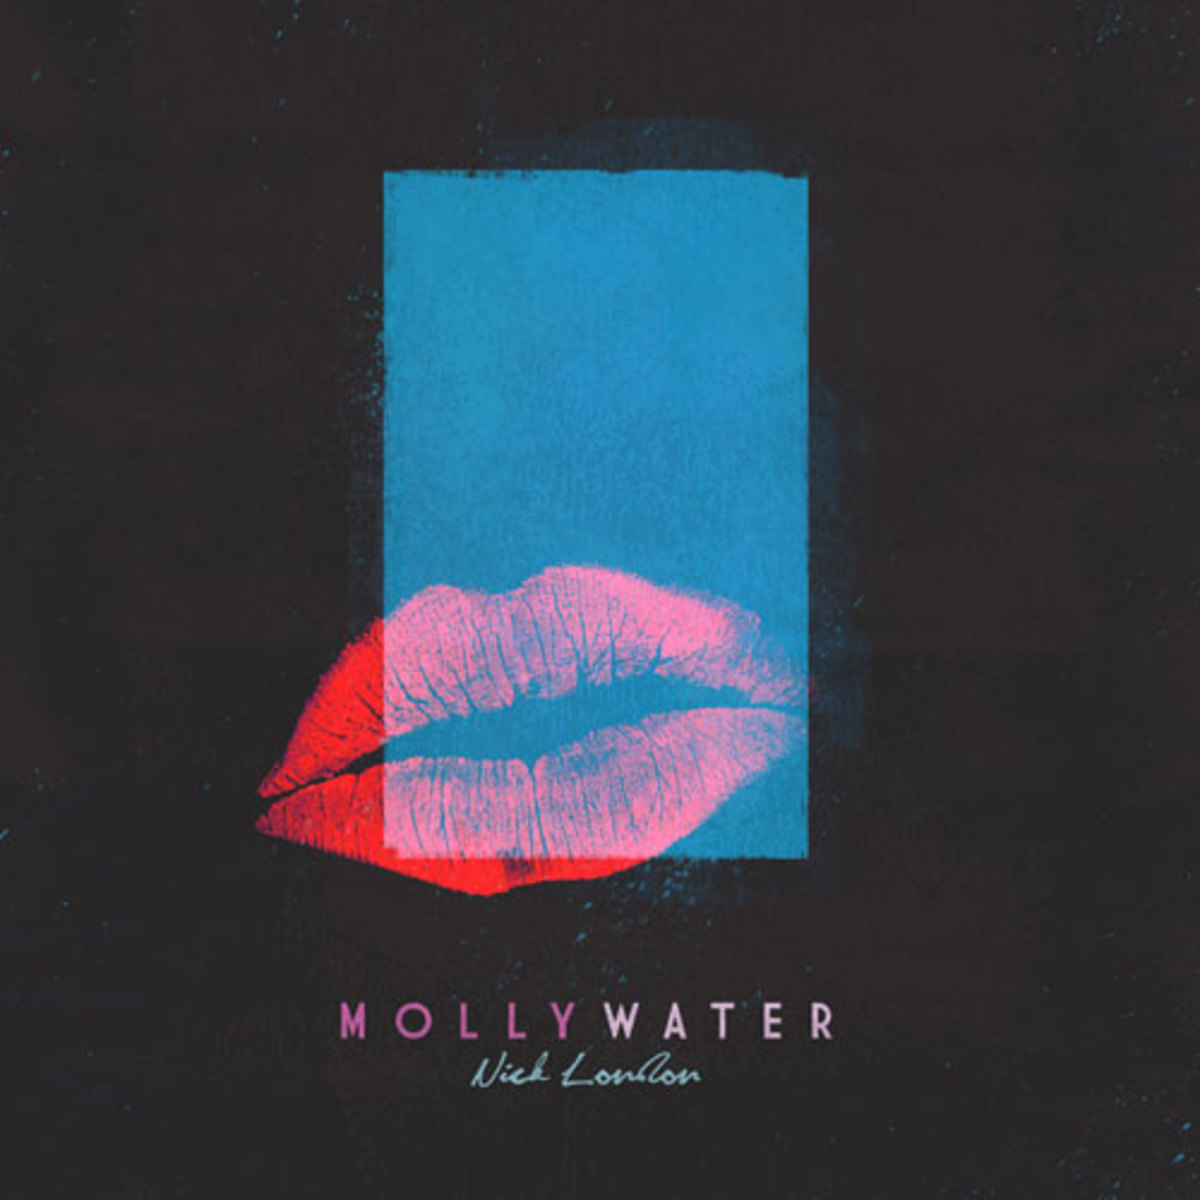 nicklondon-mollywater.jpg